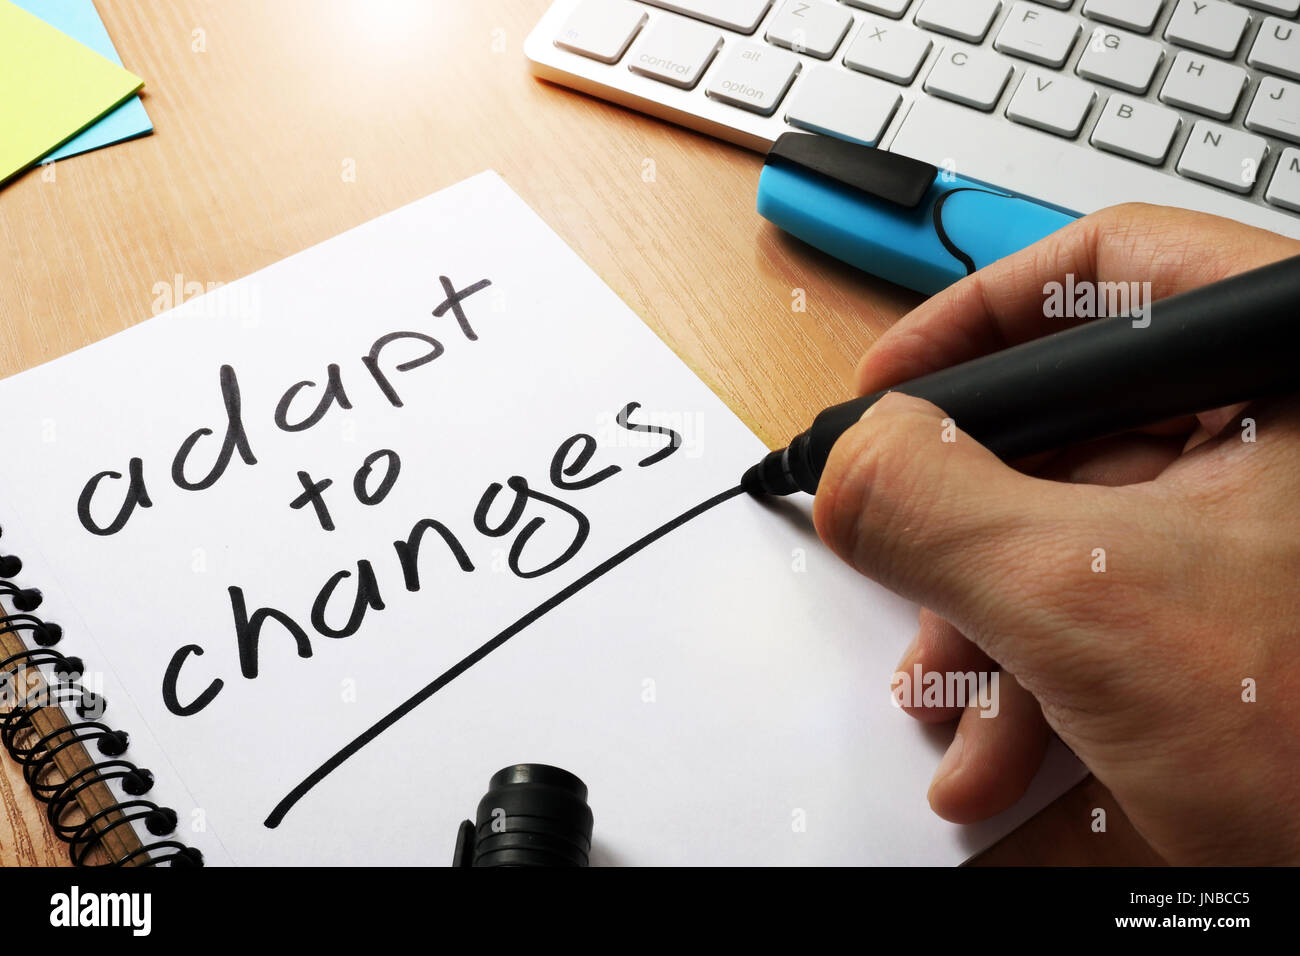 Adapt to changes written in a note. - Stock Image